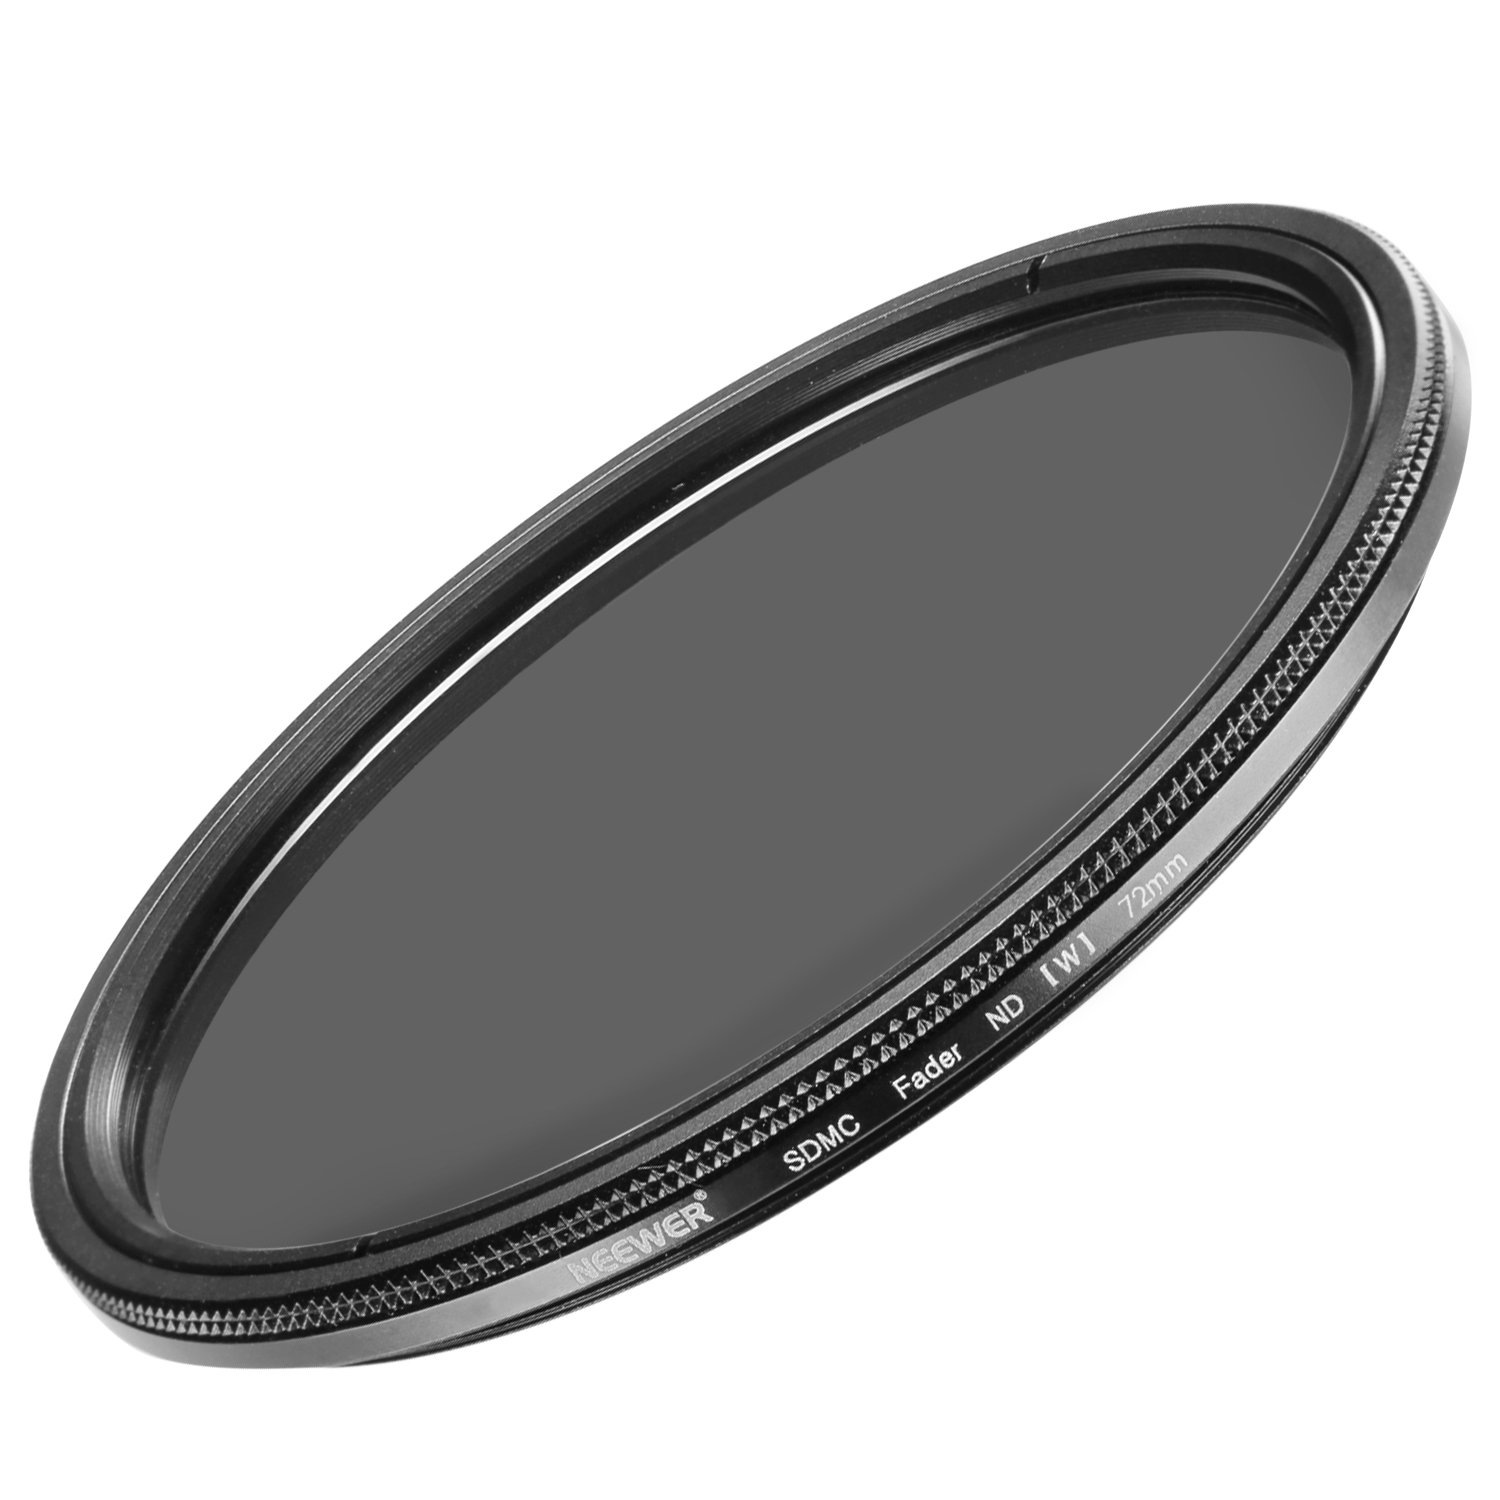 Neewer 72MM Ultra Slim ND2-ND400 Fader Neutral Density Adjustable Lens Filter for Camera Lens with 49MM Filter Thread Size, Made of Optical Class FBA_10088592